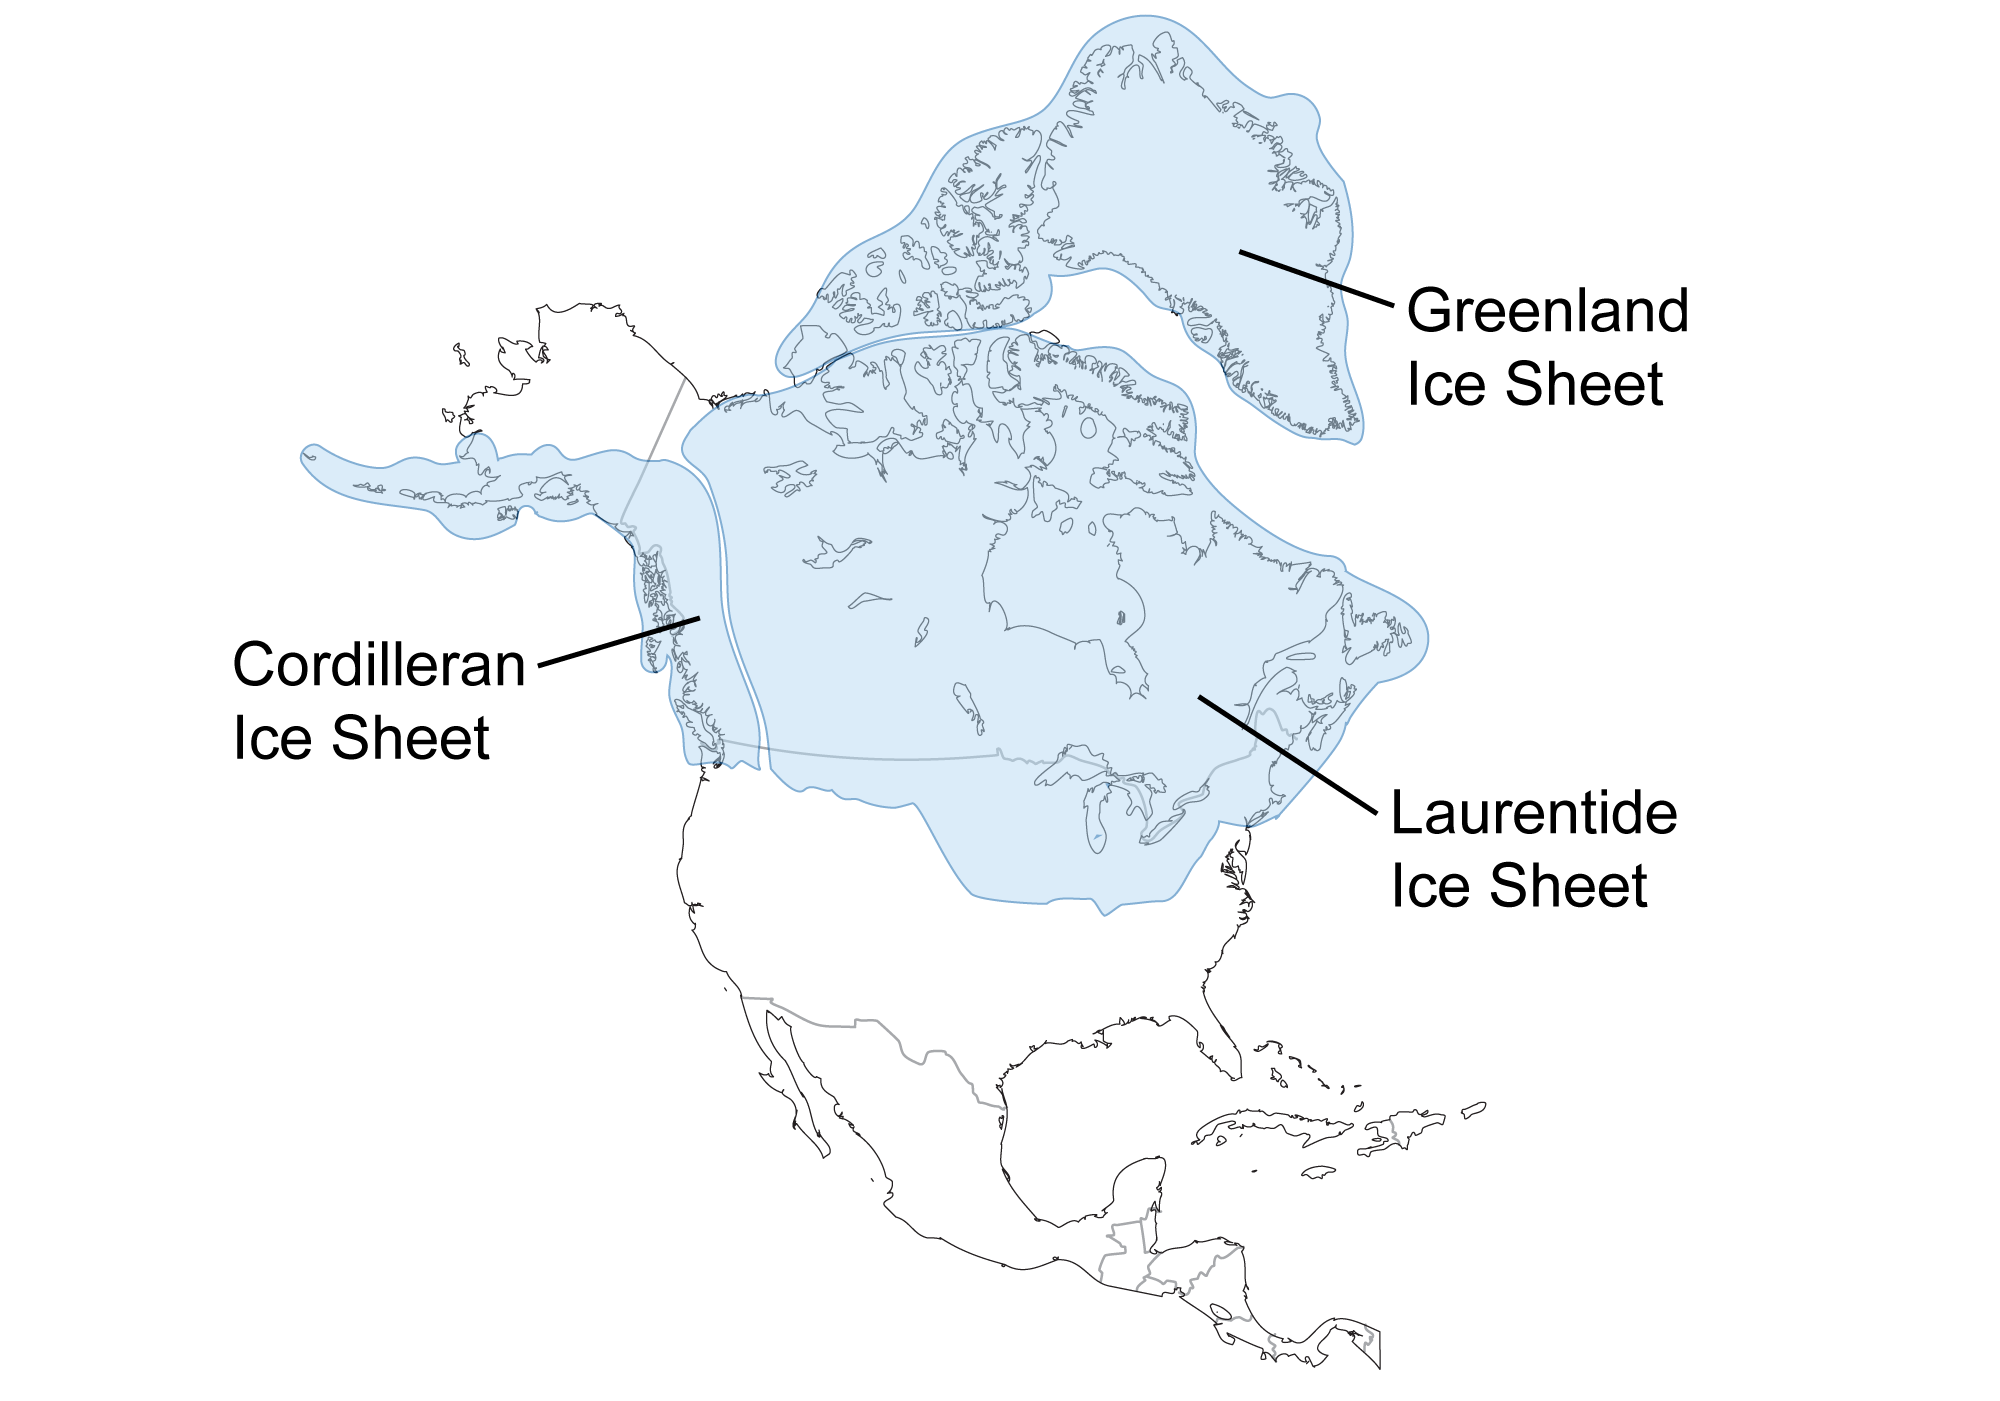 Map of North America showing the extent of glaciation during the last glacial maximum.